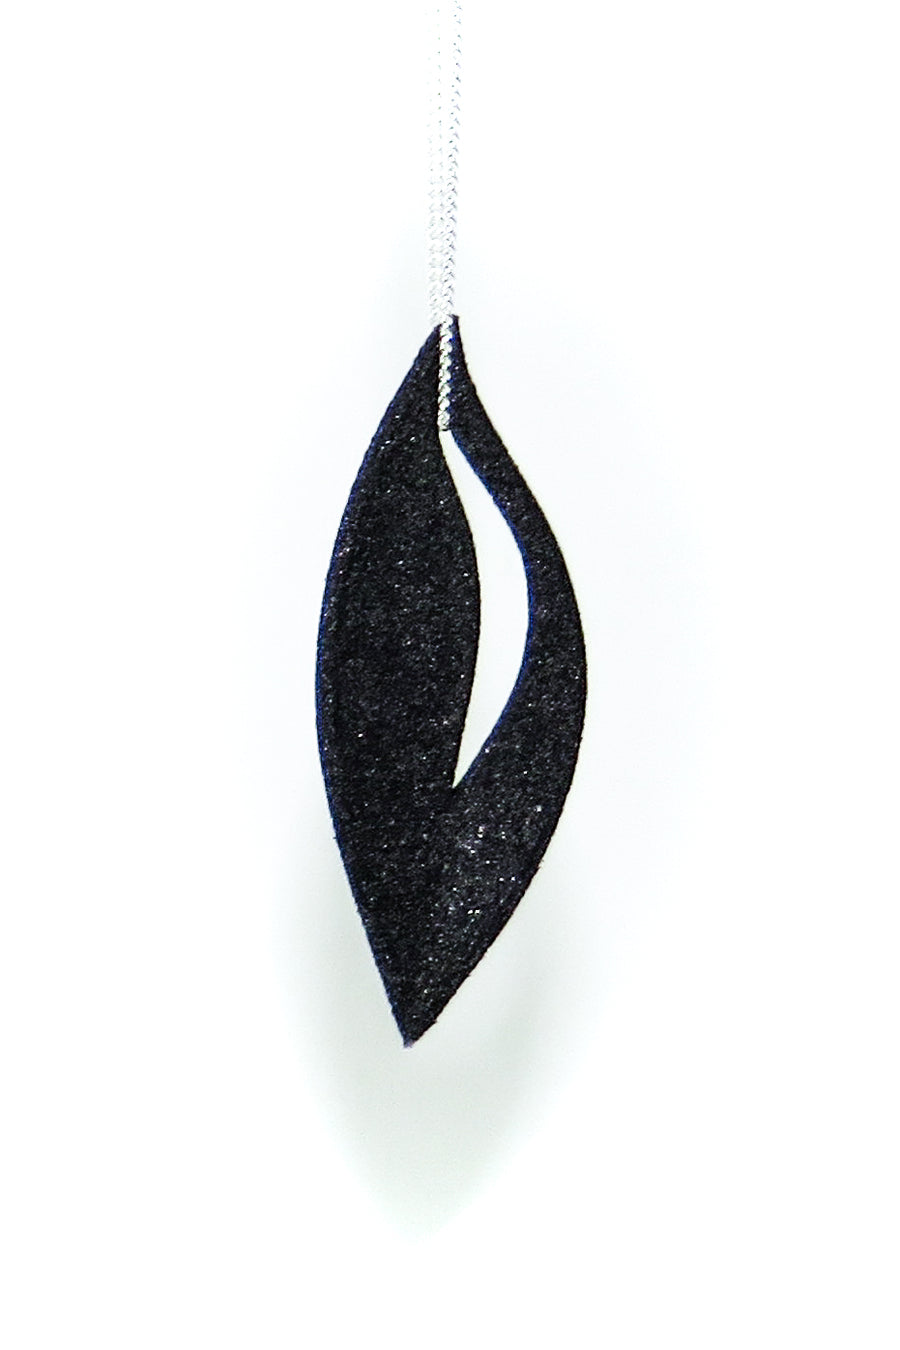 Olive Pendant 3D Printed in Carbon Black on a Sterling Silver Chain